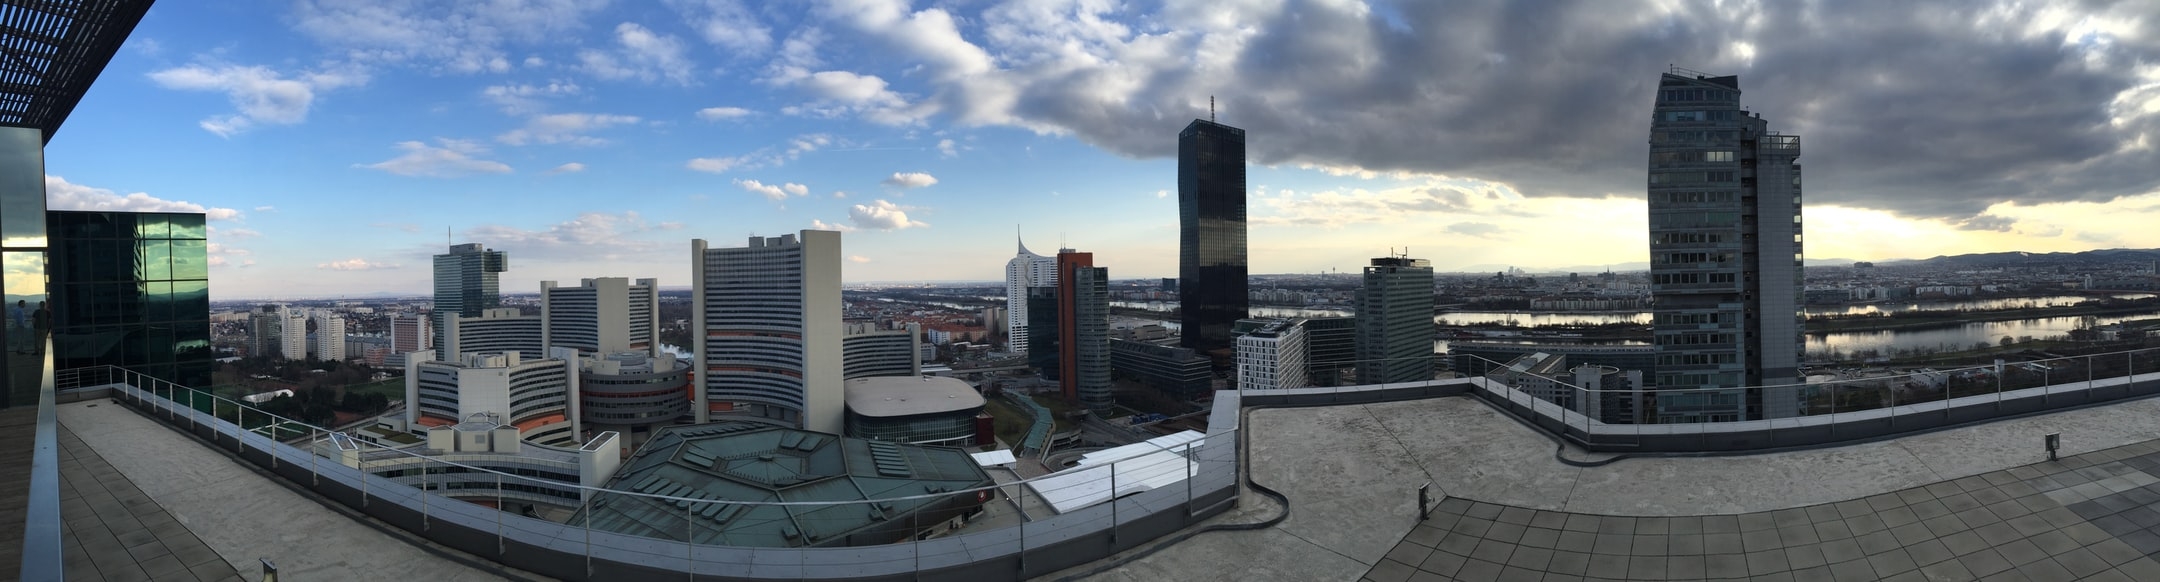 Background picture showing skyscrapers in Vienna